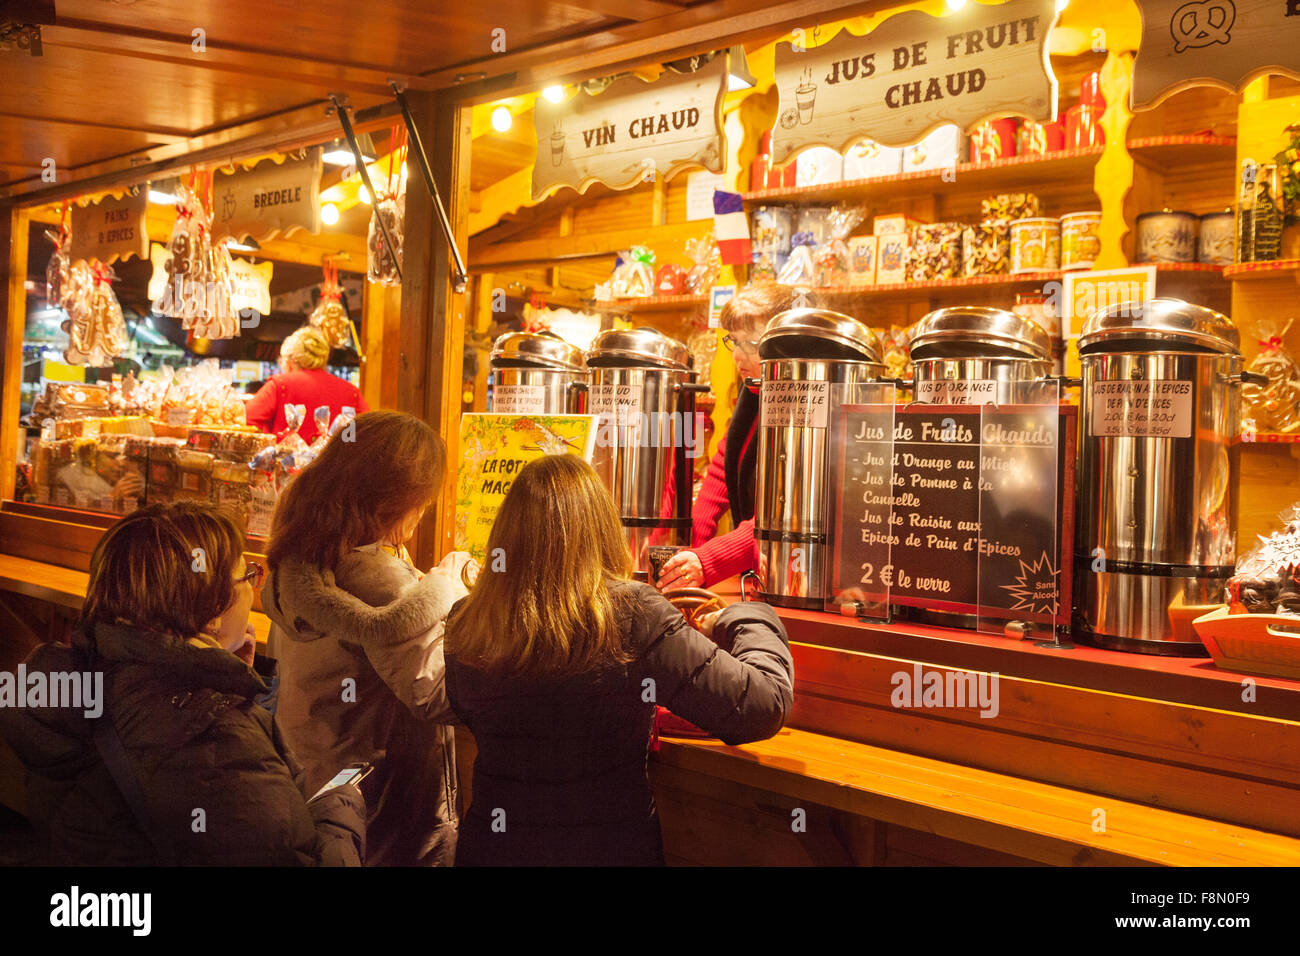 Women buying Vin Chaud ( Mulled Wine ) at a stall, Strasbourg Christmas market, Alsace, France Europe Stock Photo